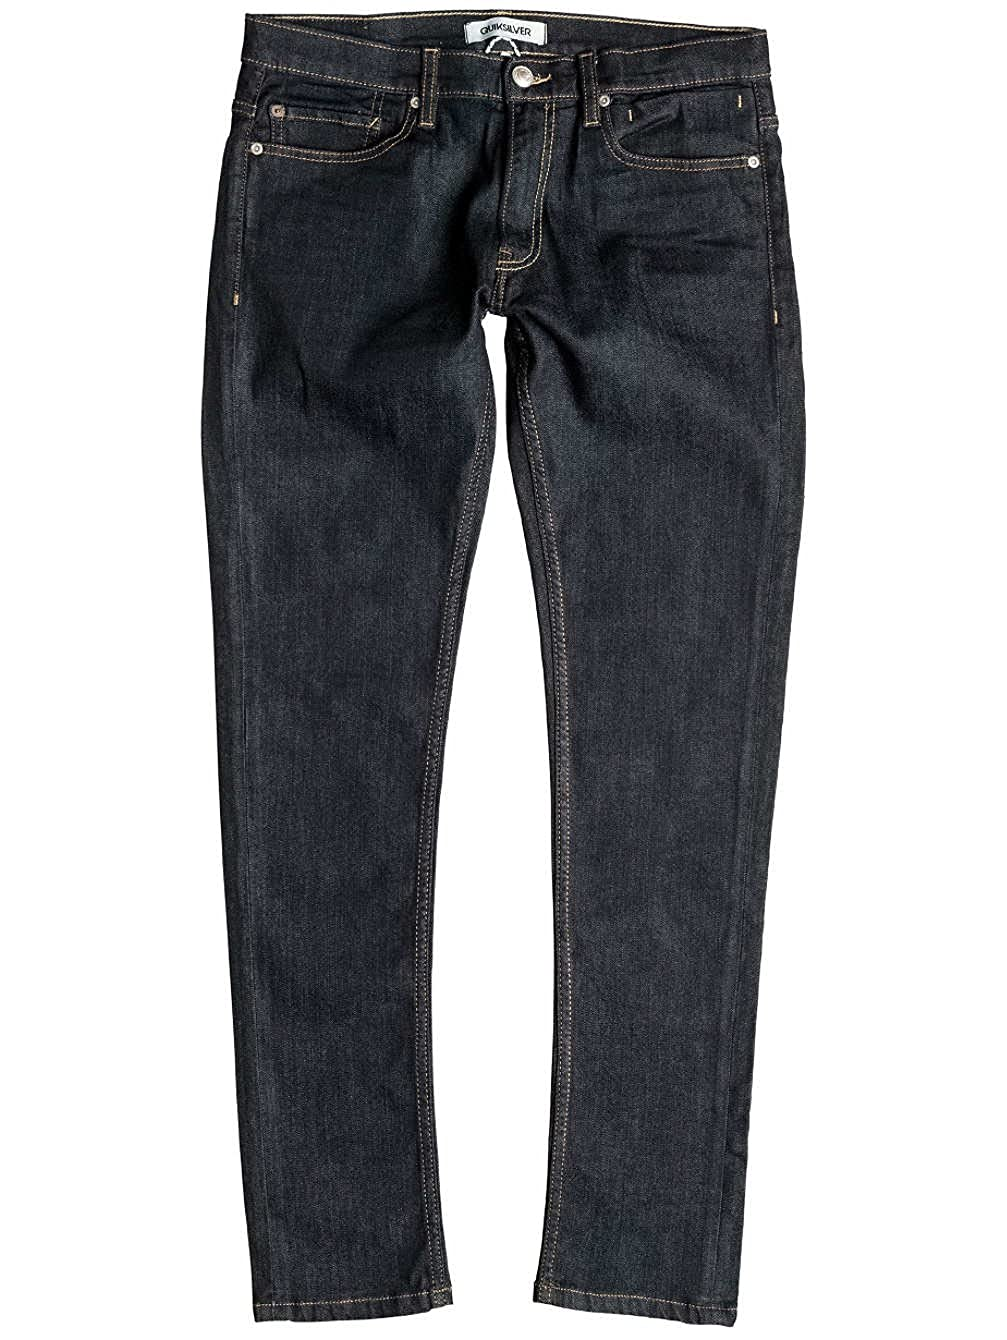 Quiksilver Jeans Men Distorsion Rinse 32 Pantalones Vaqueros ...